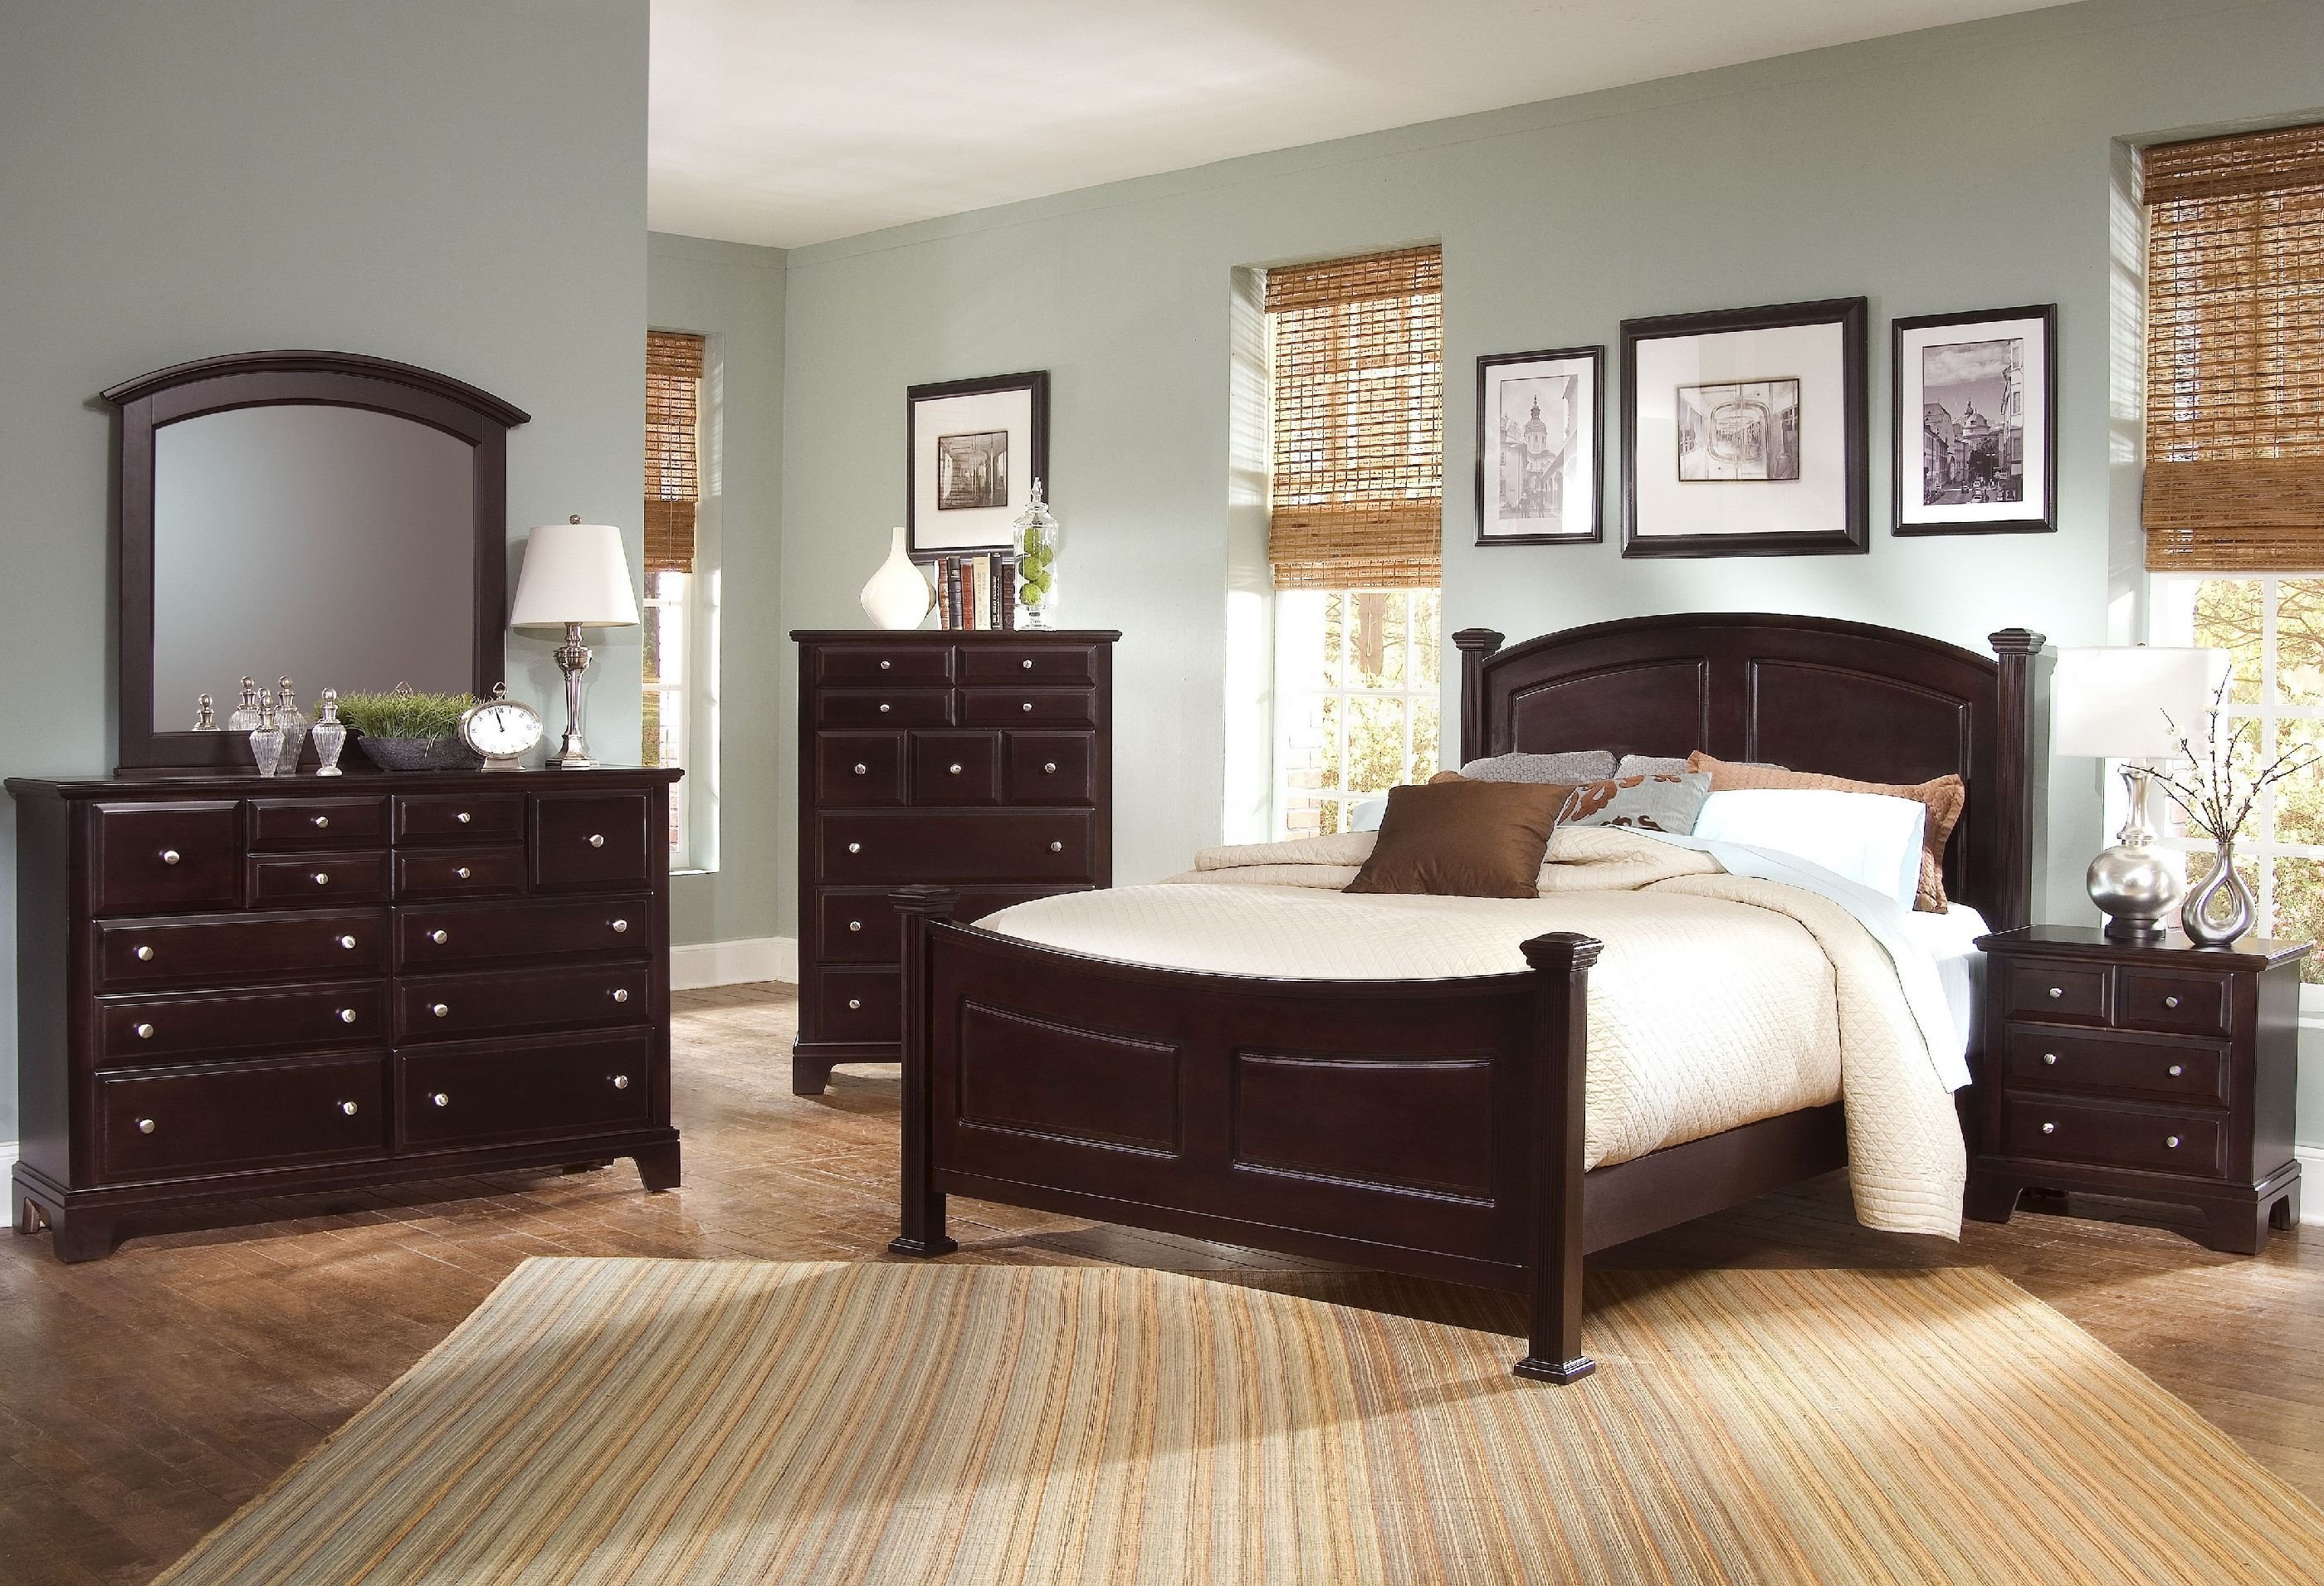 Best Vaughan Bassett Bedroom Triple Dresser Bb4 002 Americana Furniture Waterford And New London Ct With Pictures